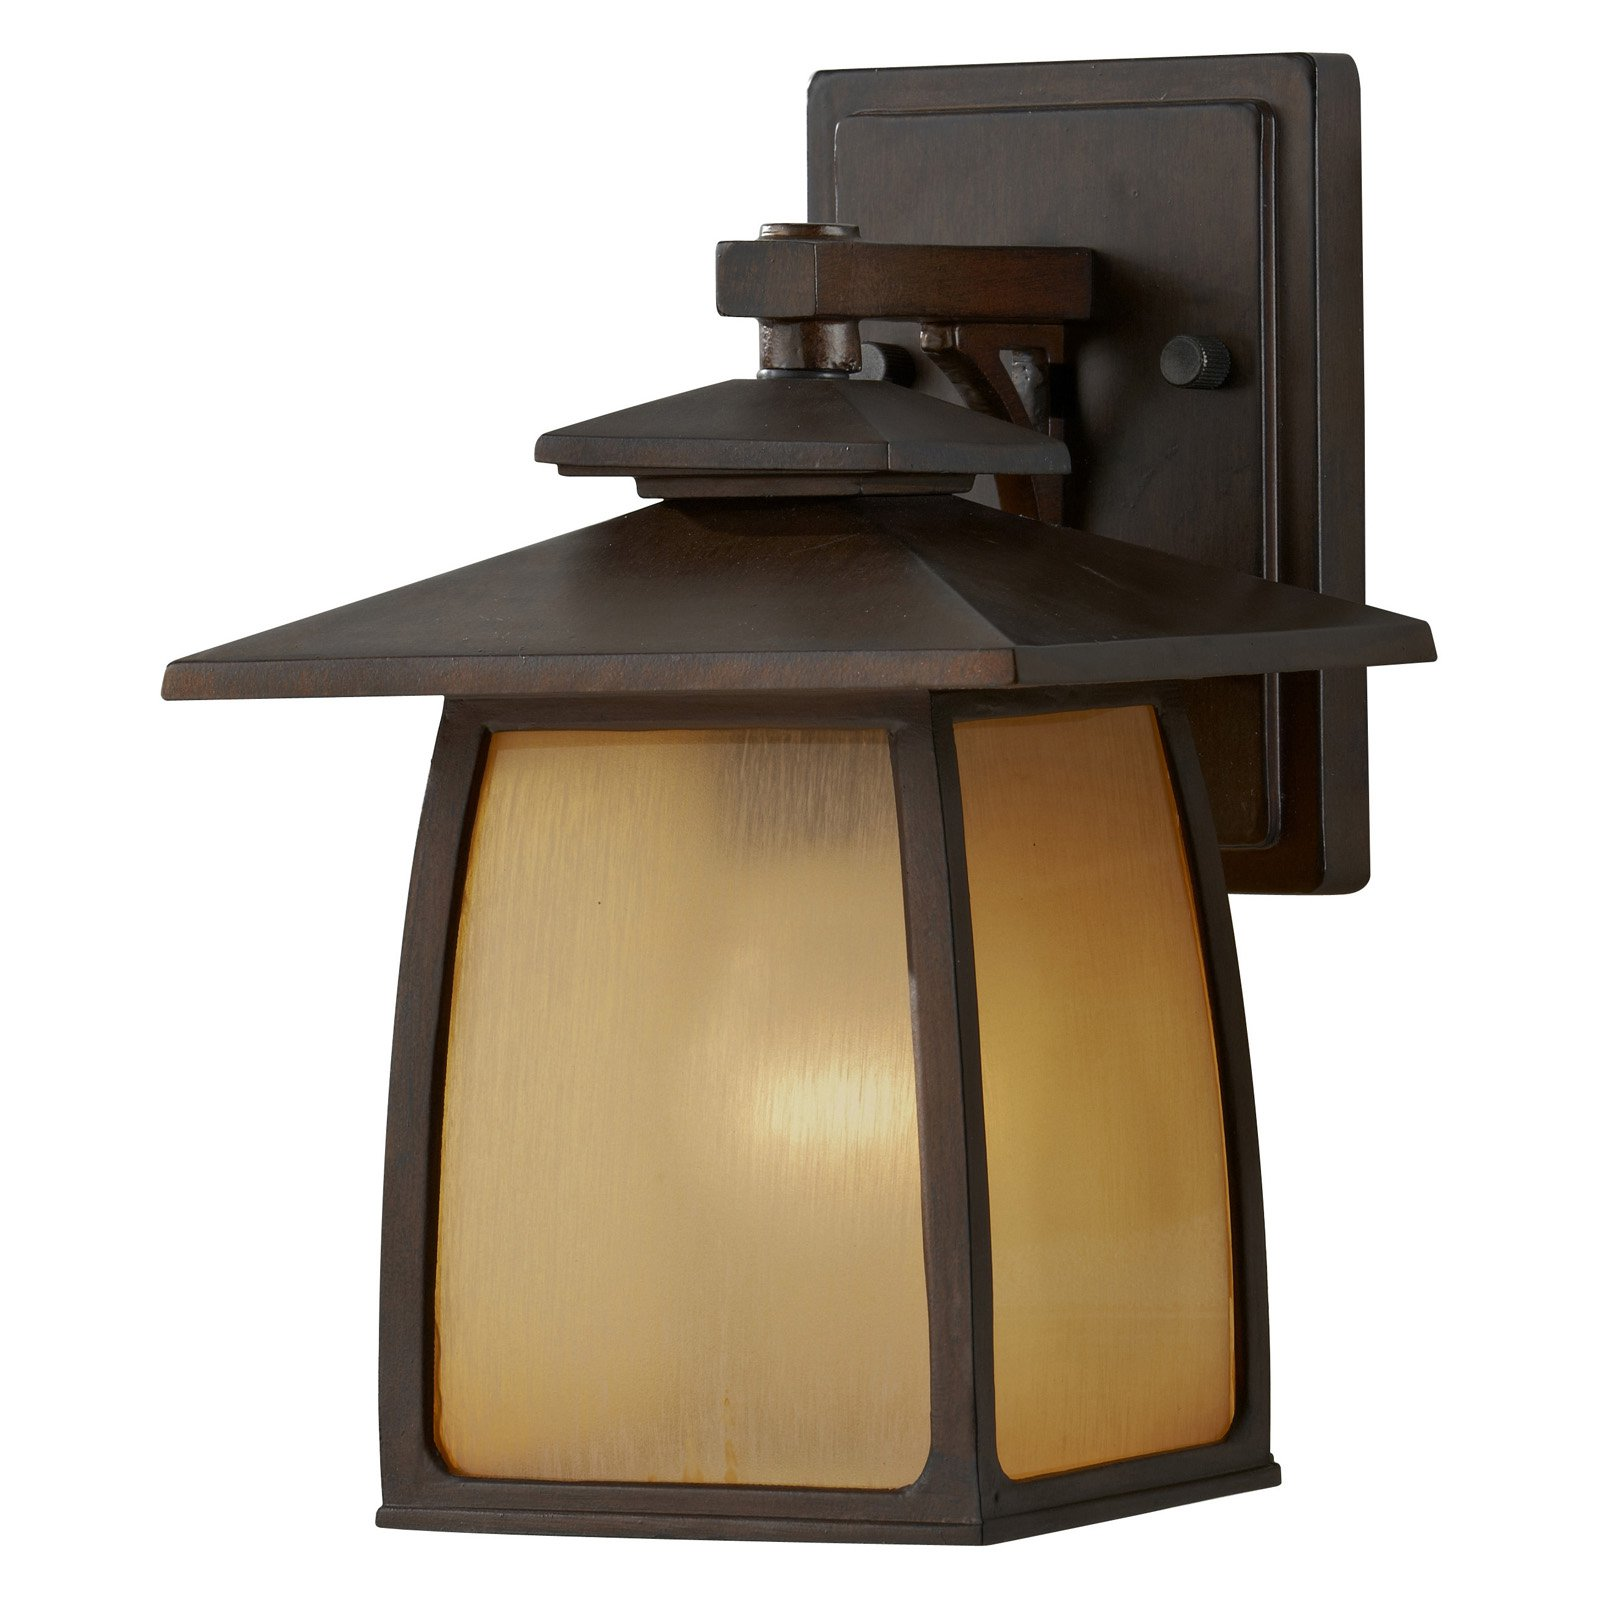 Home Solutions Wright House OL850 1-Light Outdoor Lantern - Sorrel Brown